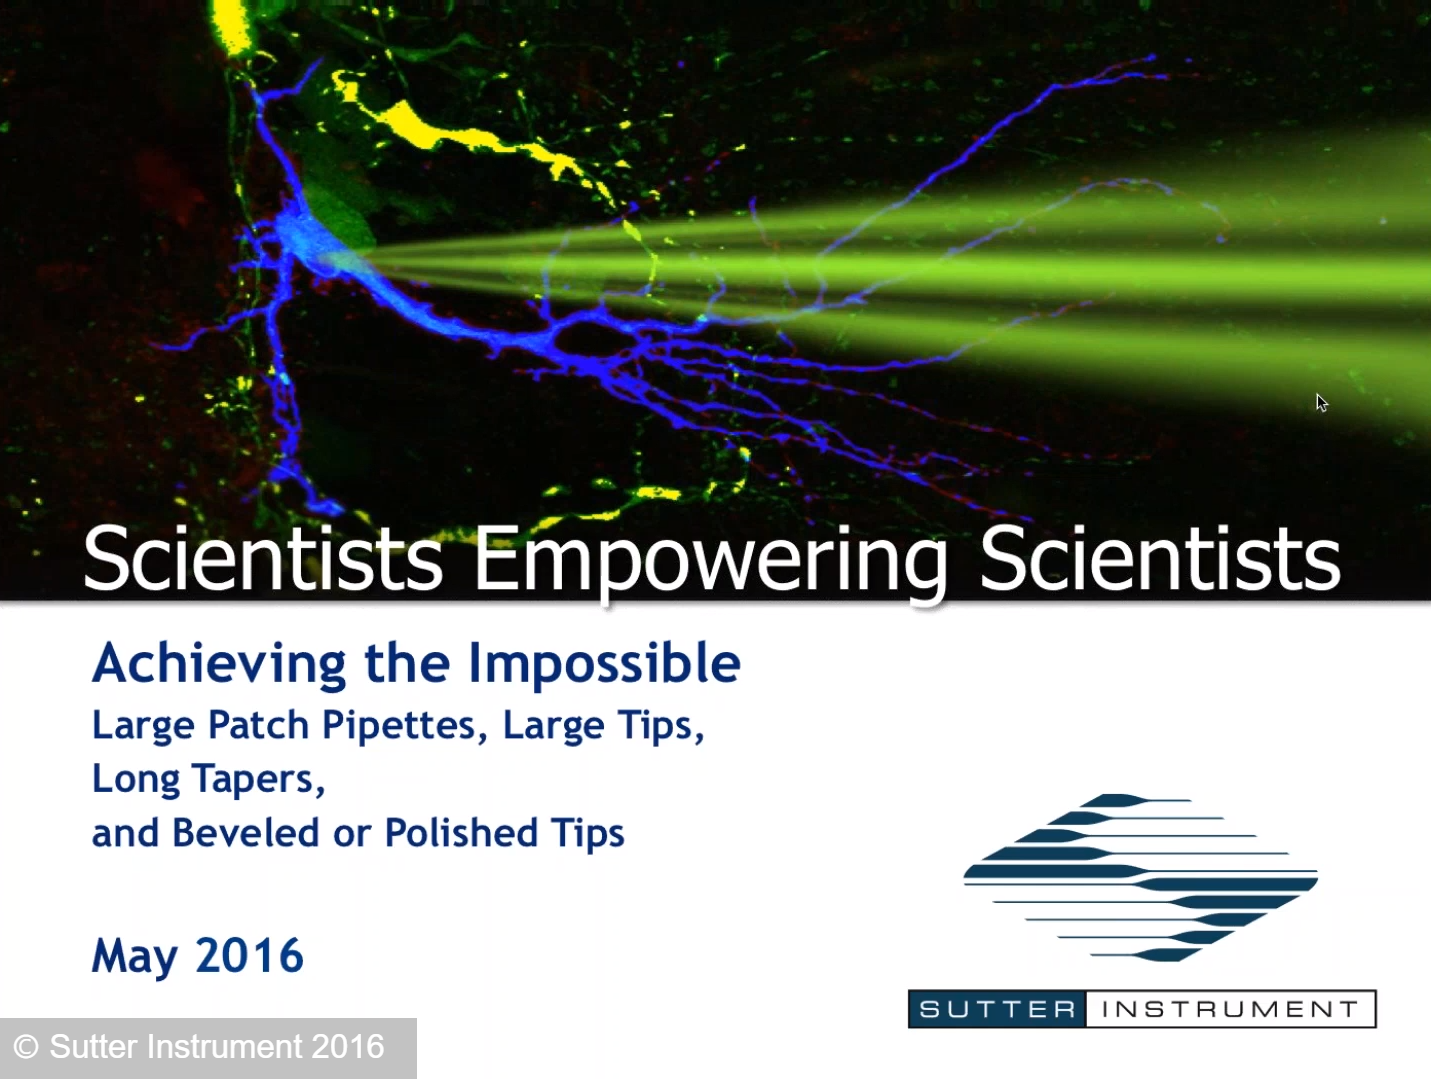 Achieving the Impossible - Scientists Empowering Scientists